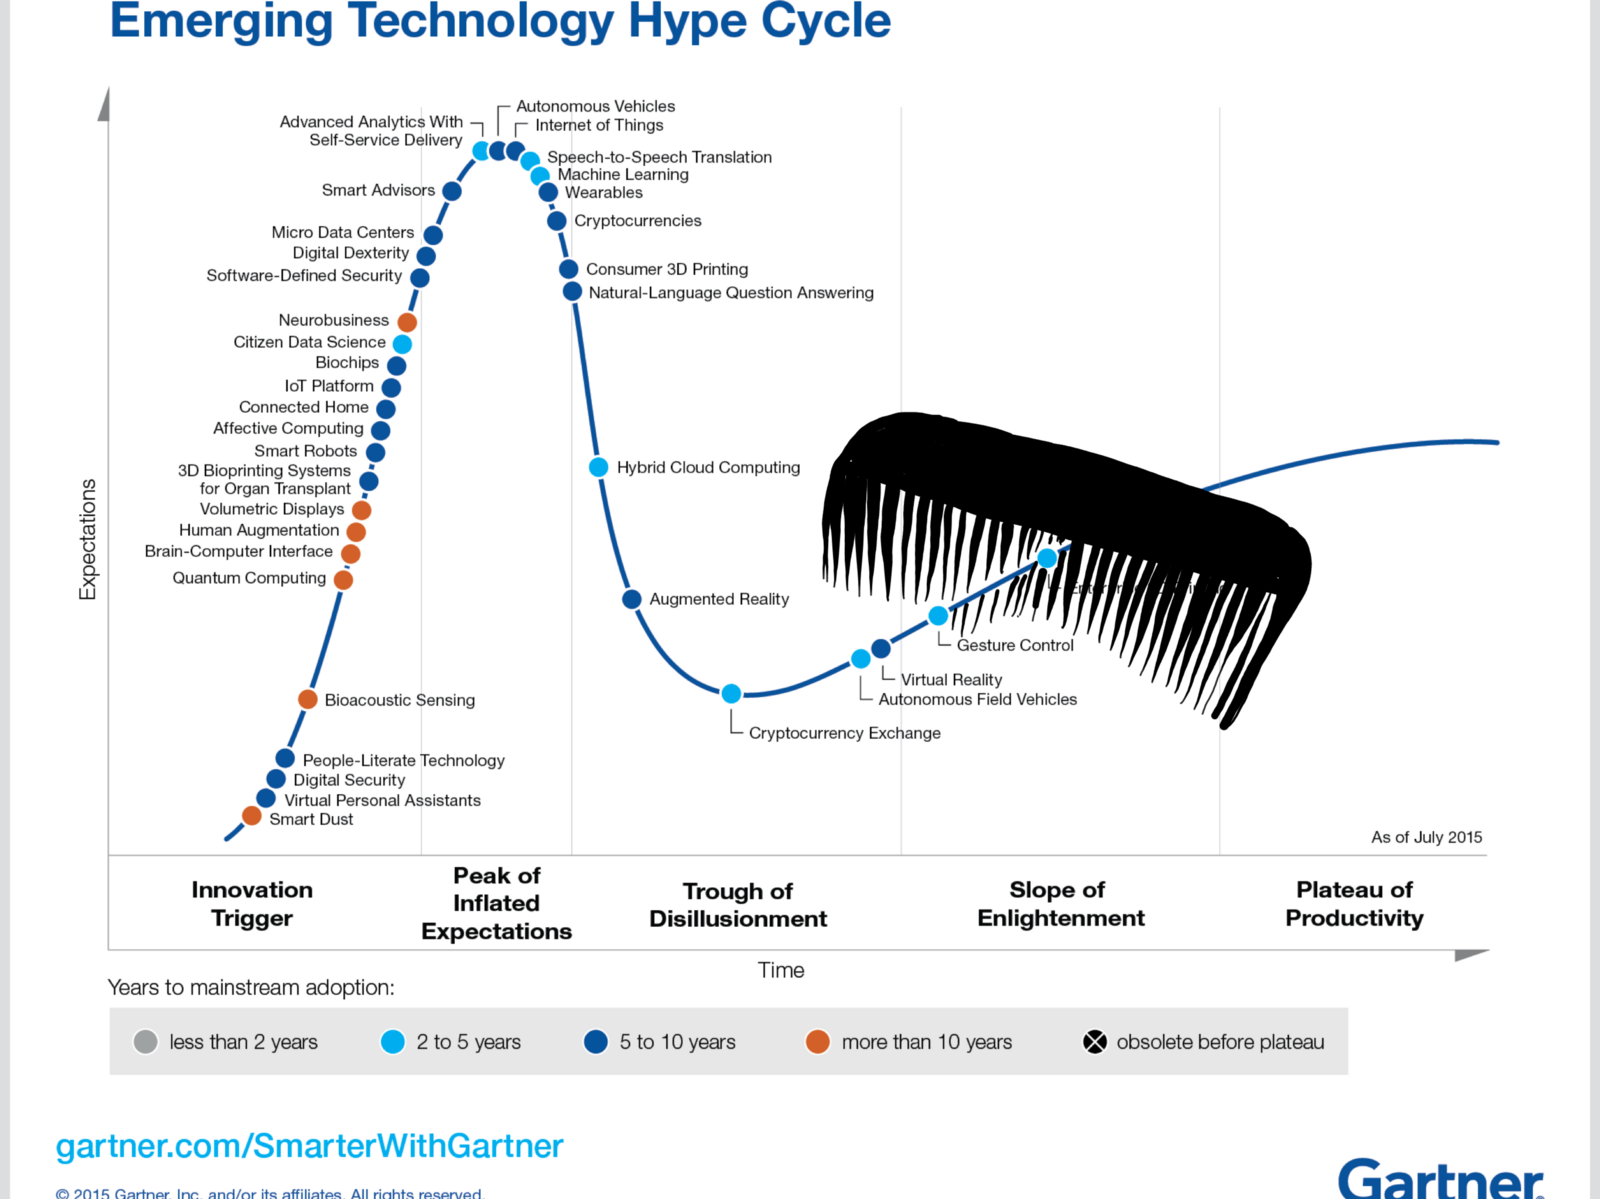 Taking the nit comb to Gartner's Hype Cycle